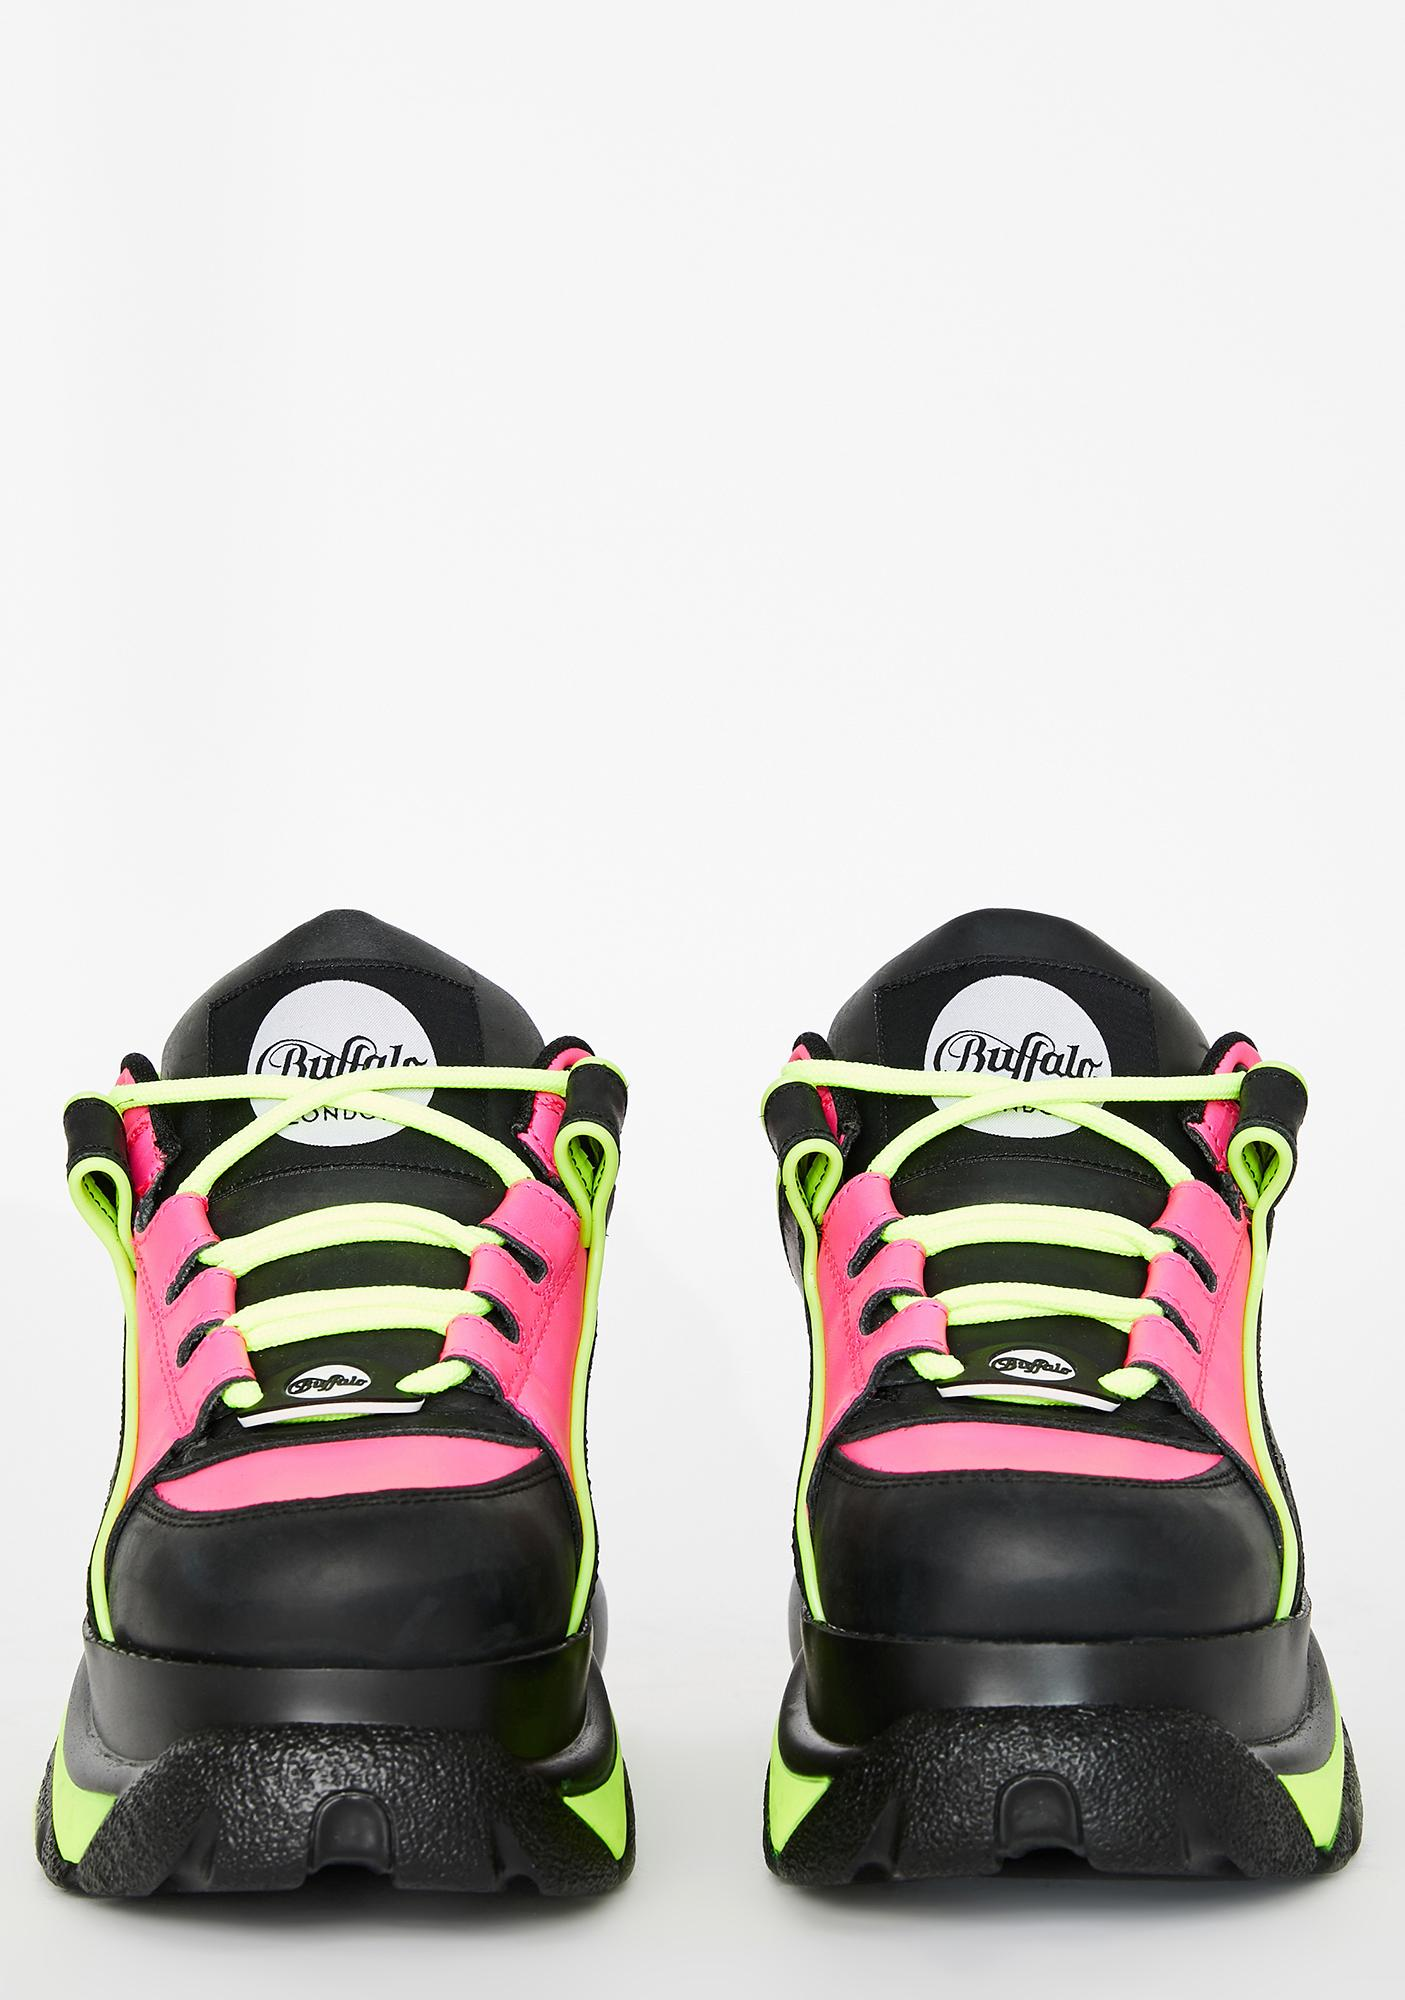 Buffalo London Fuchsia Neon Classic Low Leather Sneakers